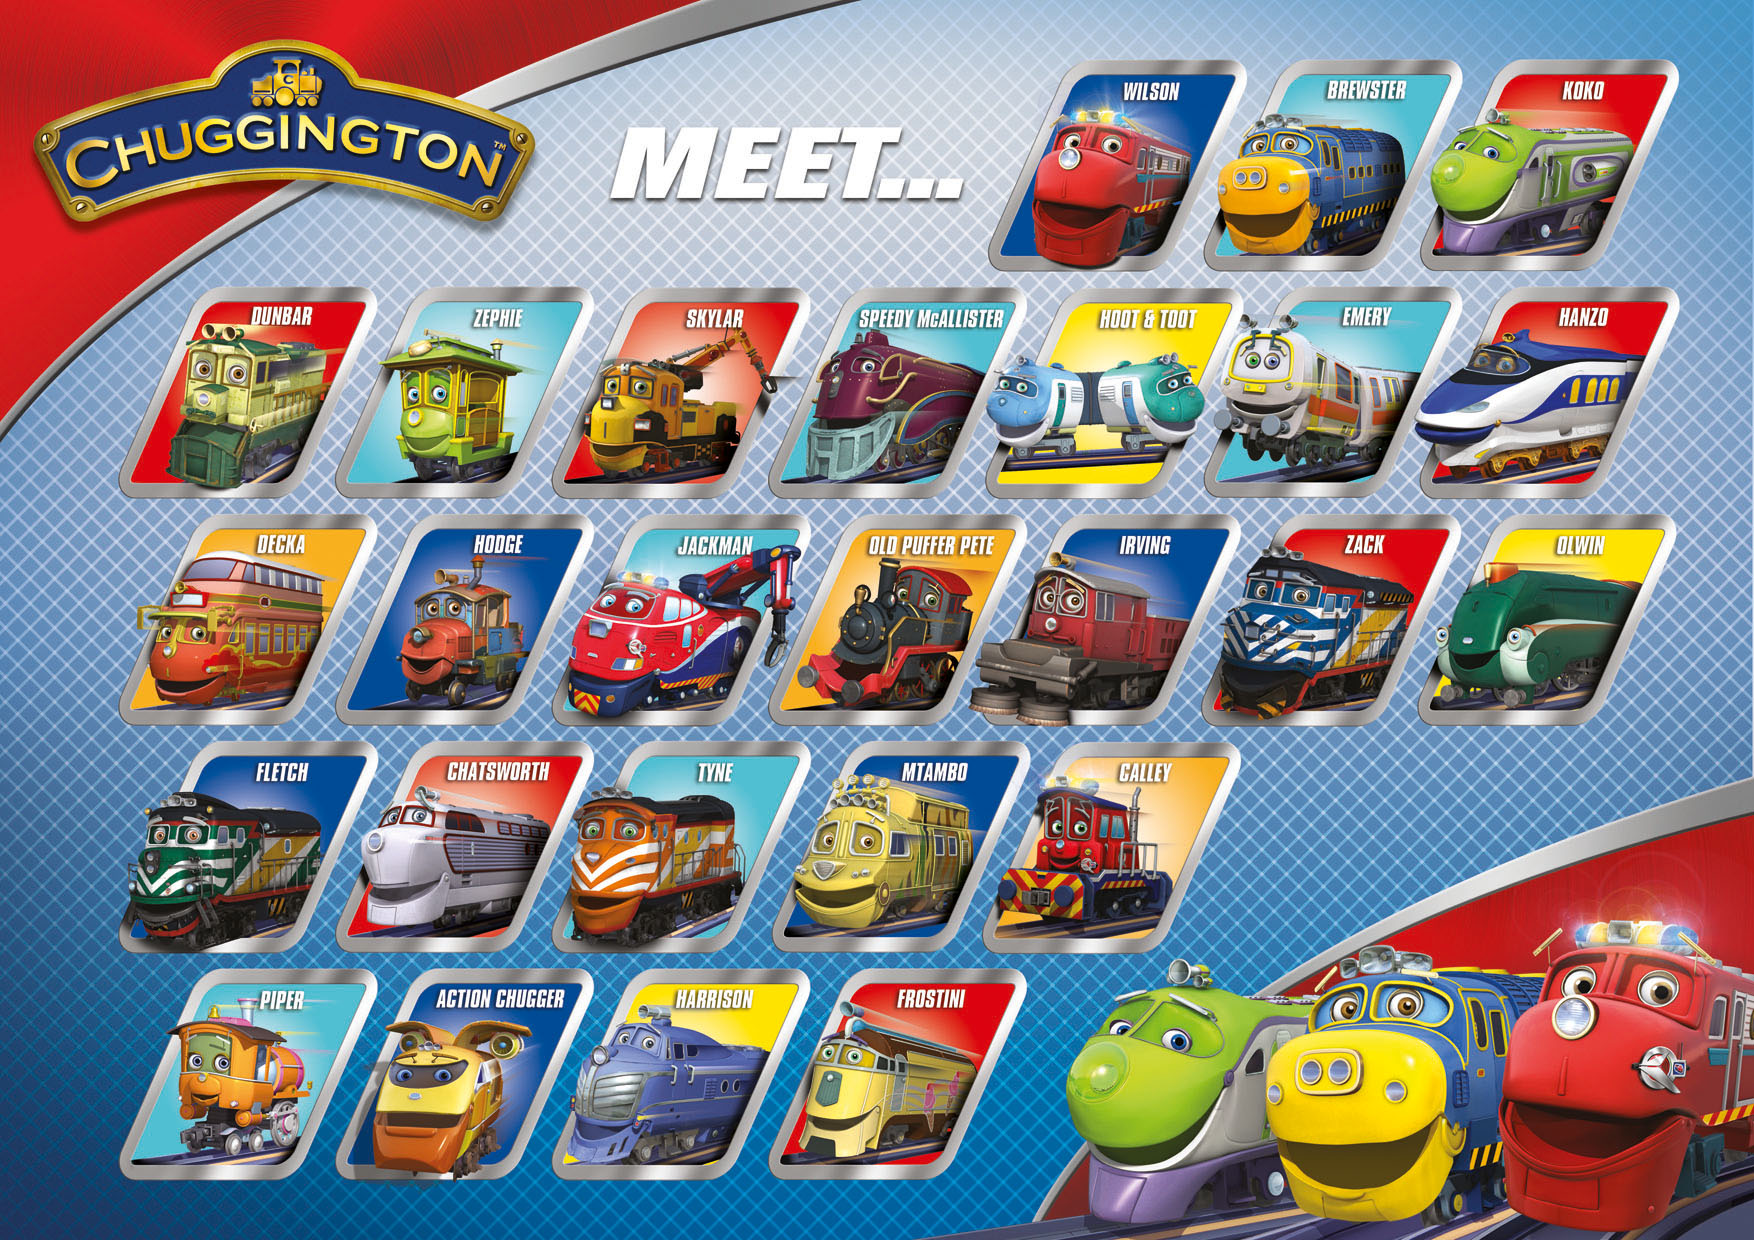 image chuggington meet the chuggers poster jpg chuggington